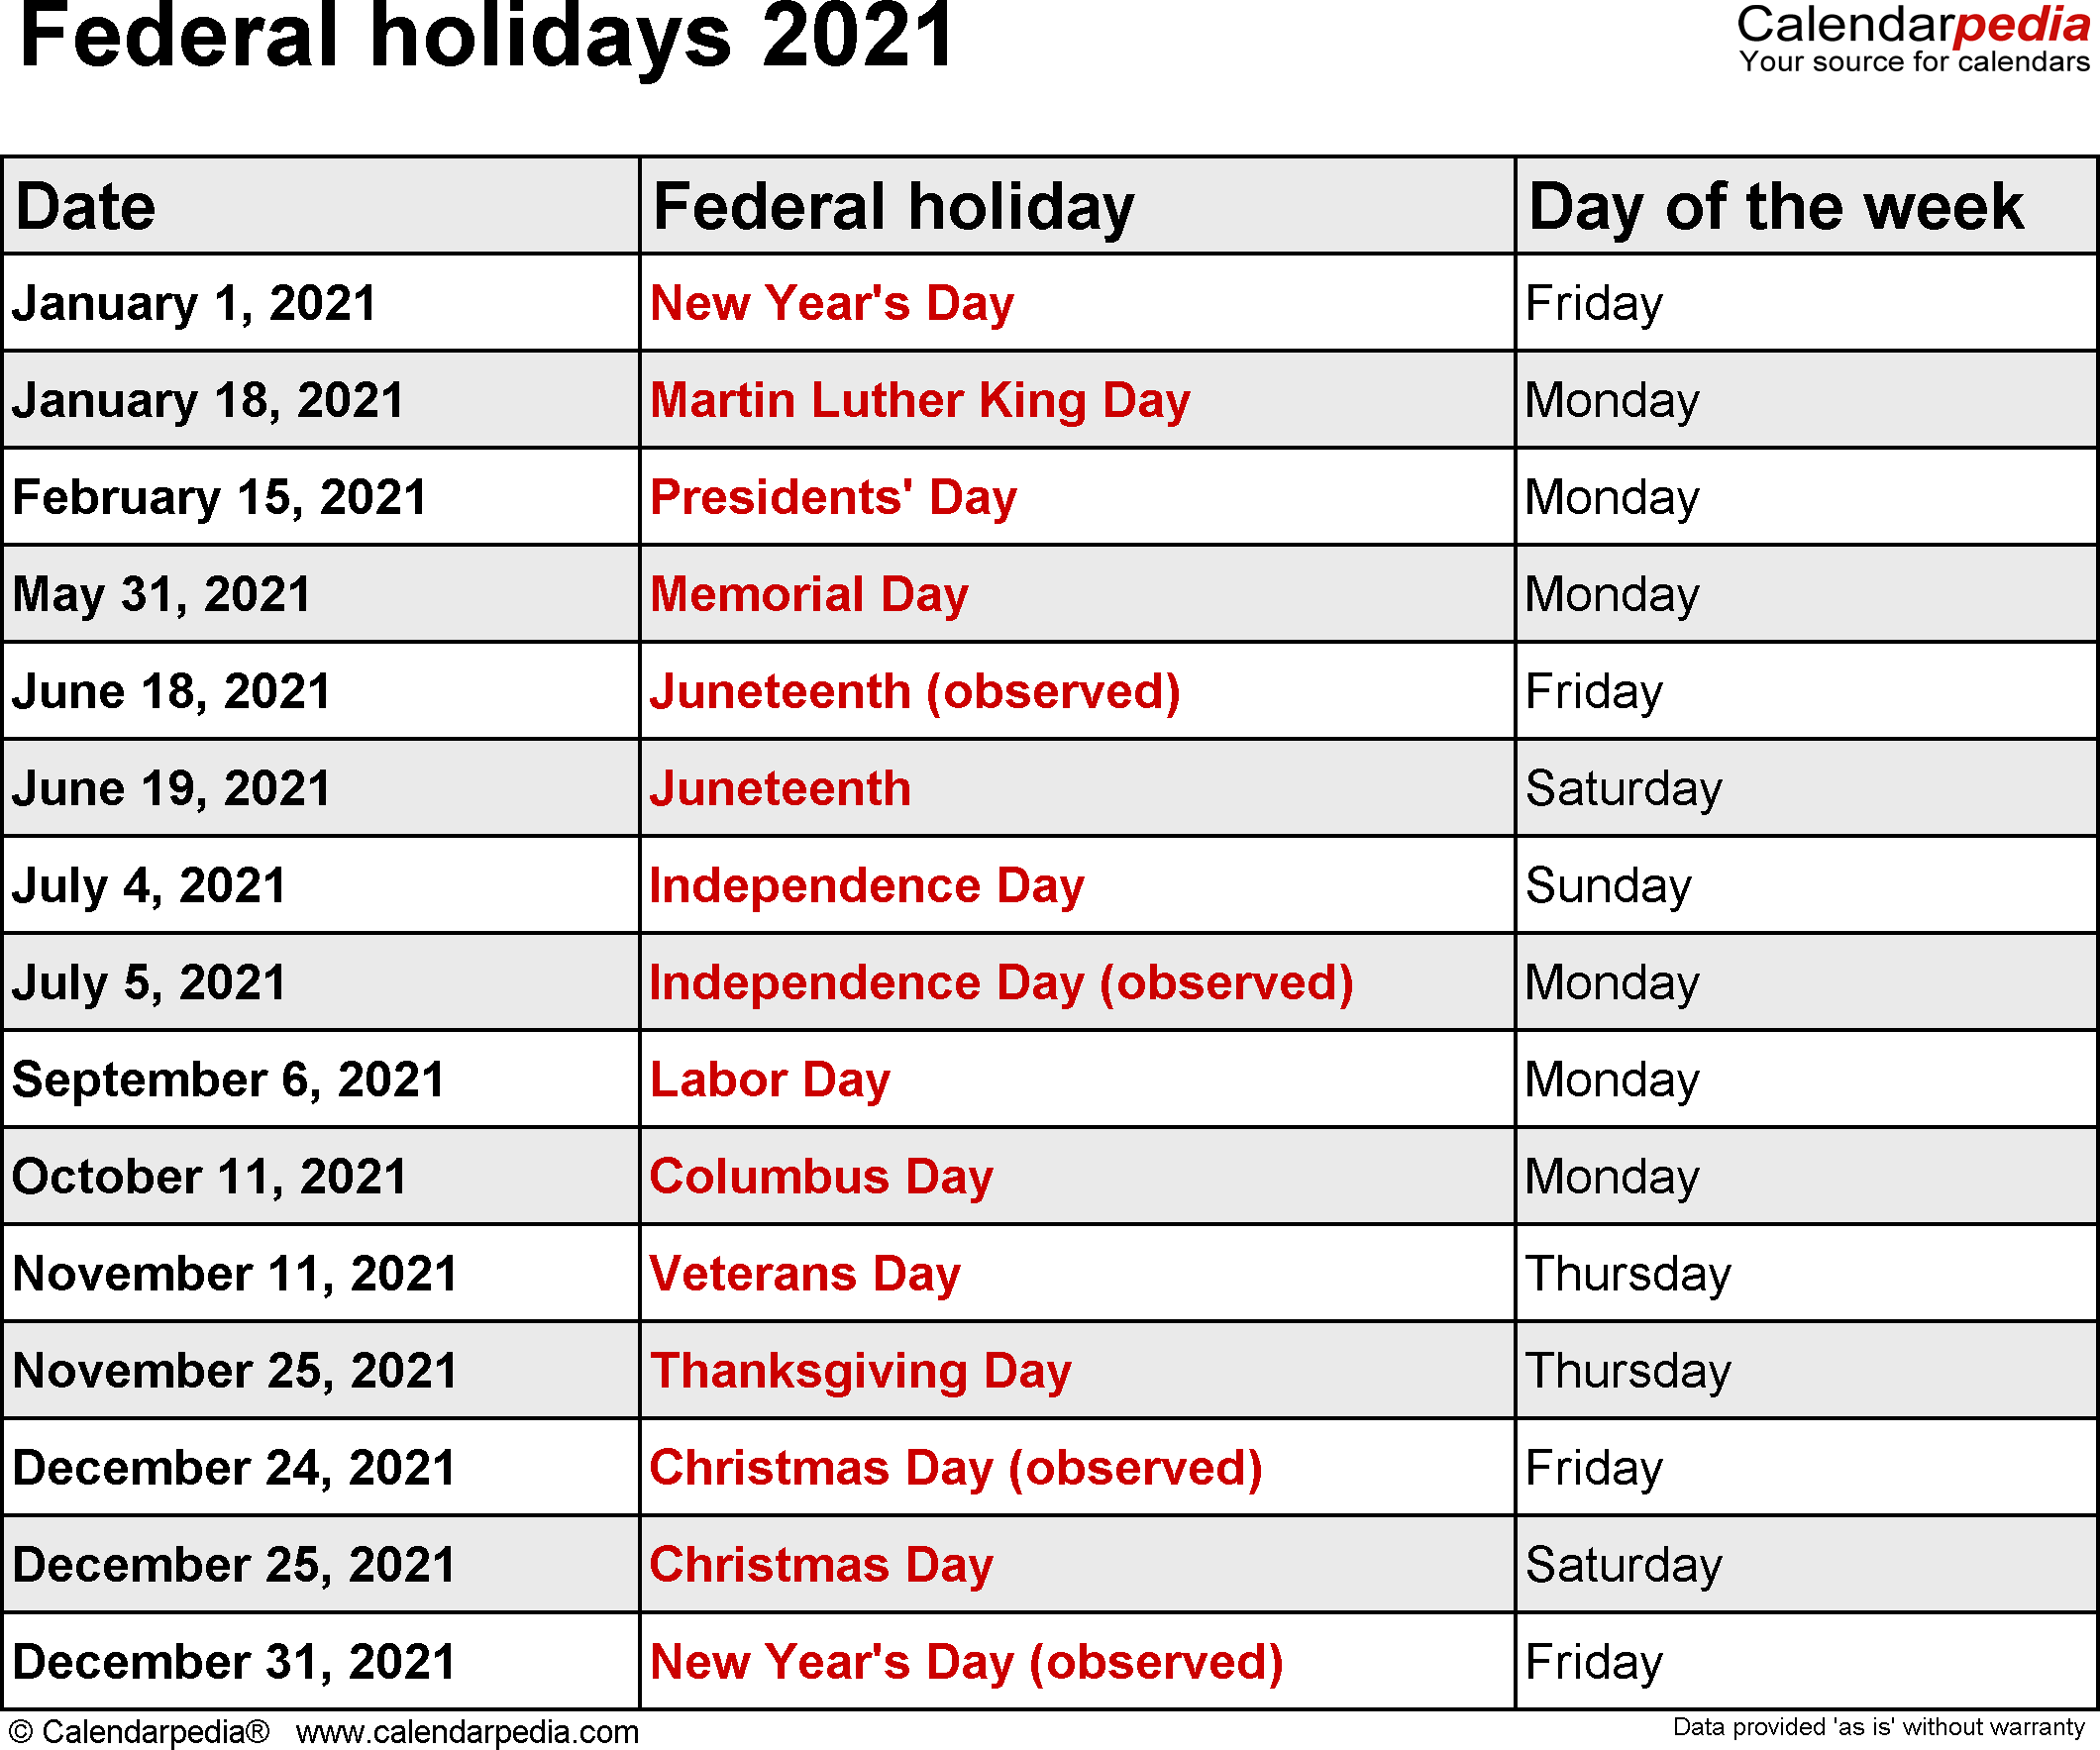 Calendar 2021 Holidays List Federal Holidays 2021